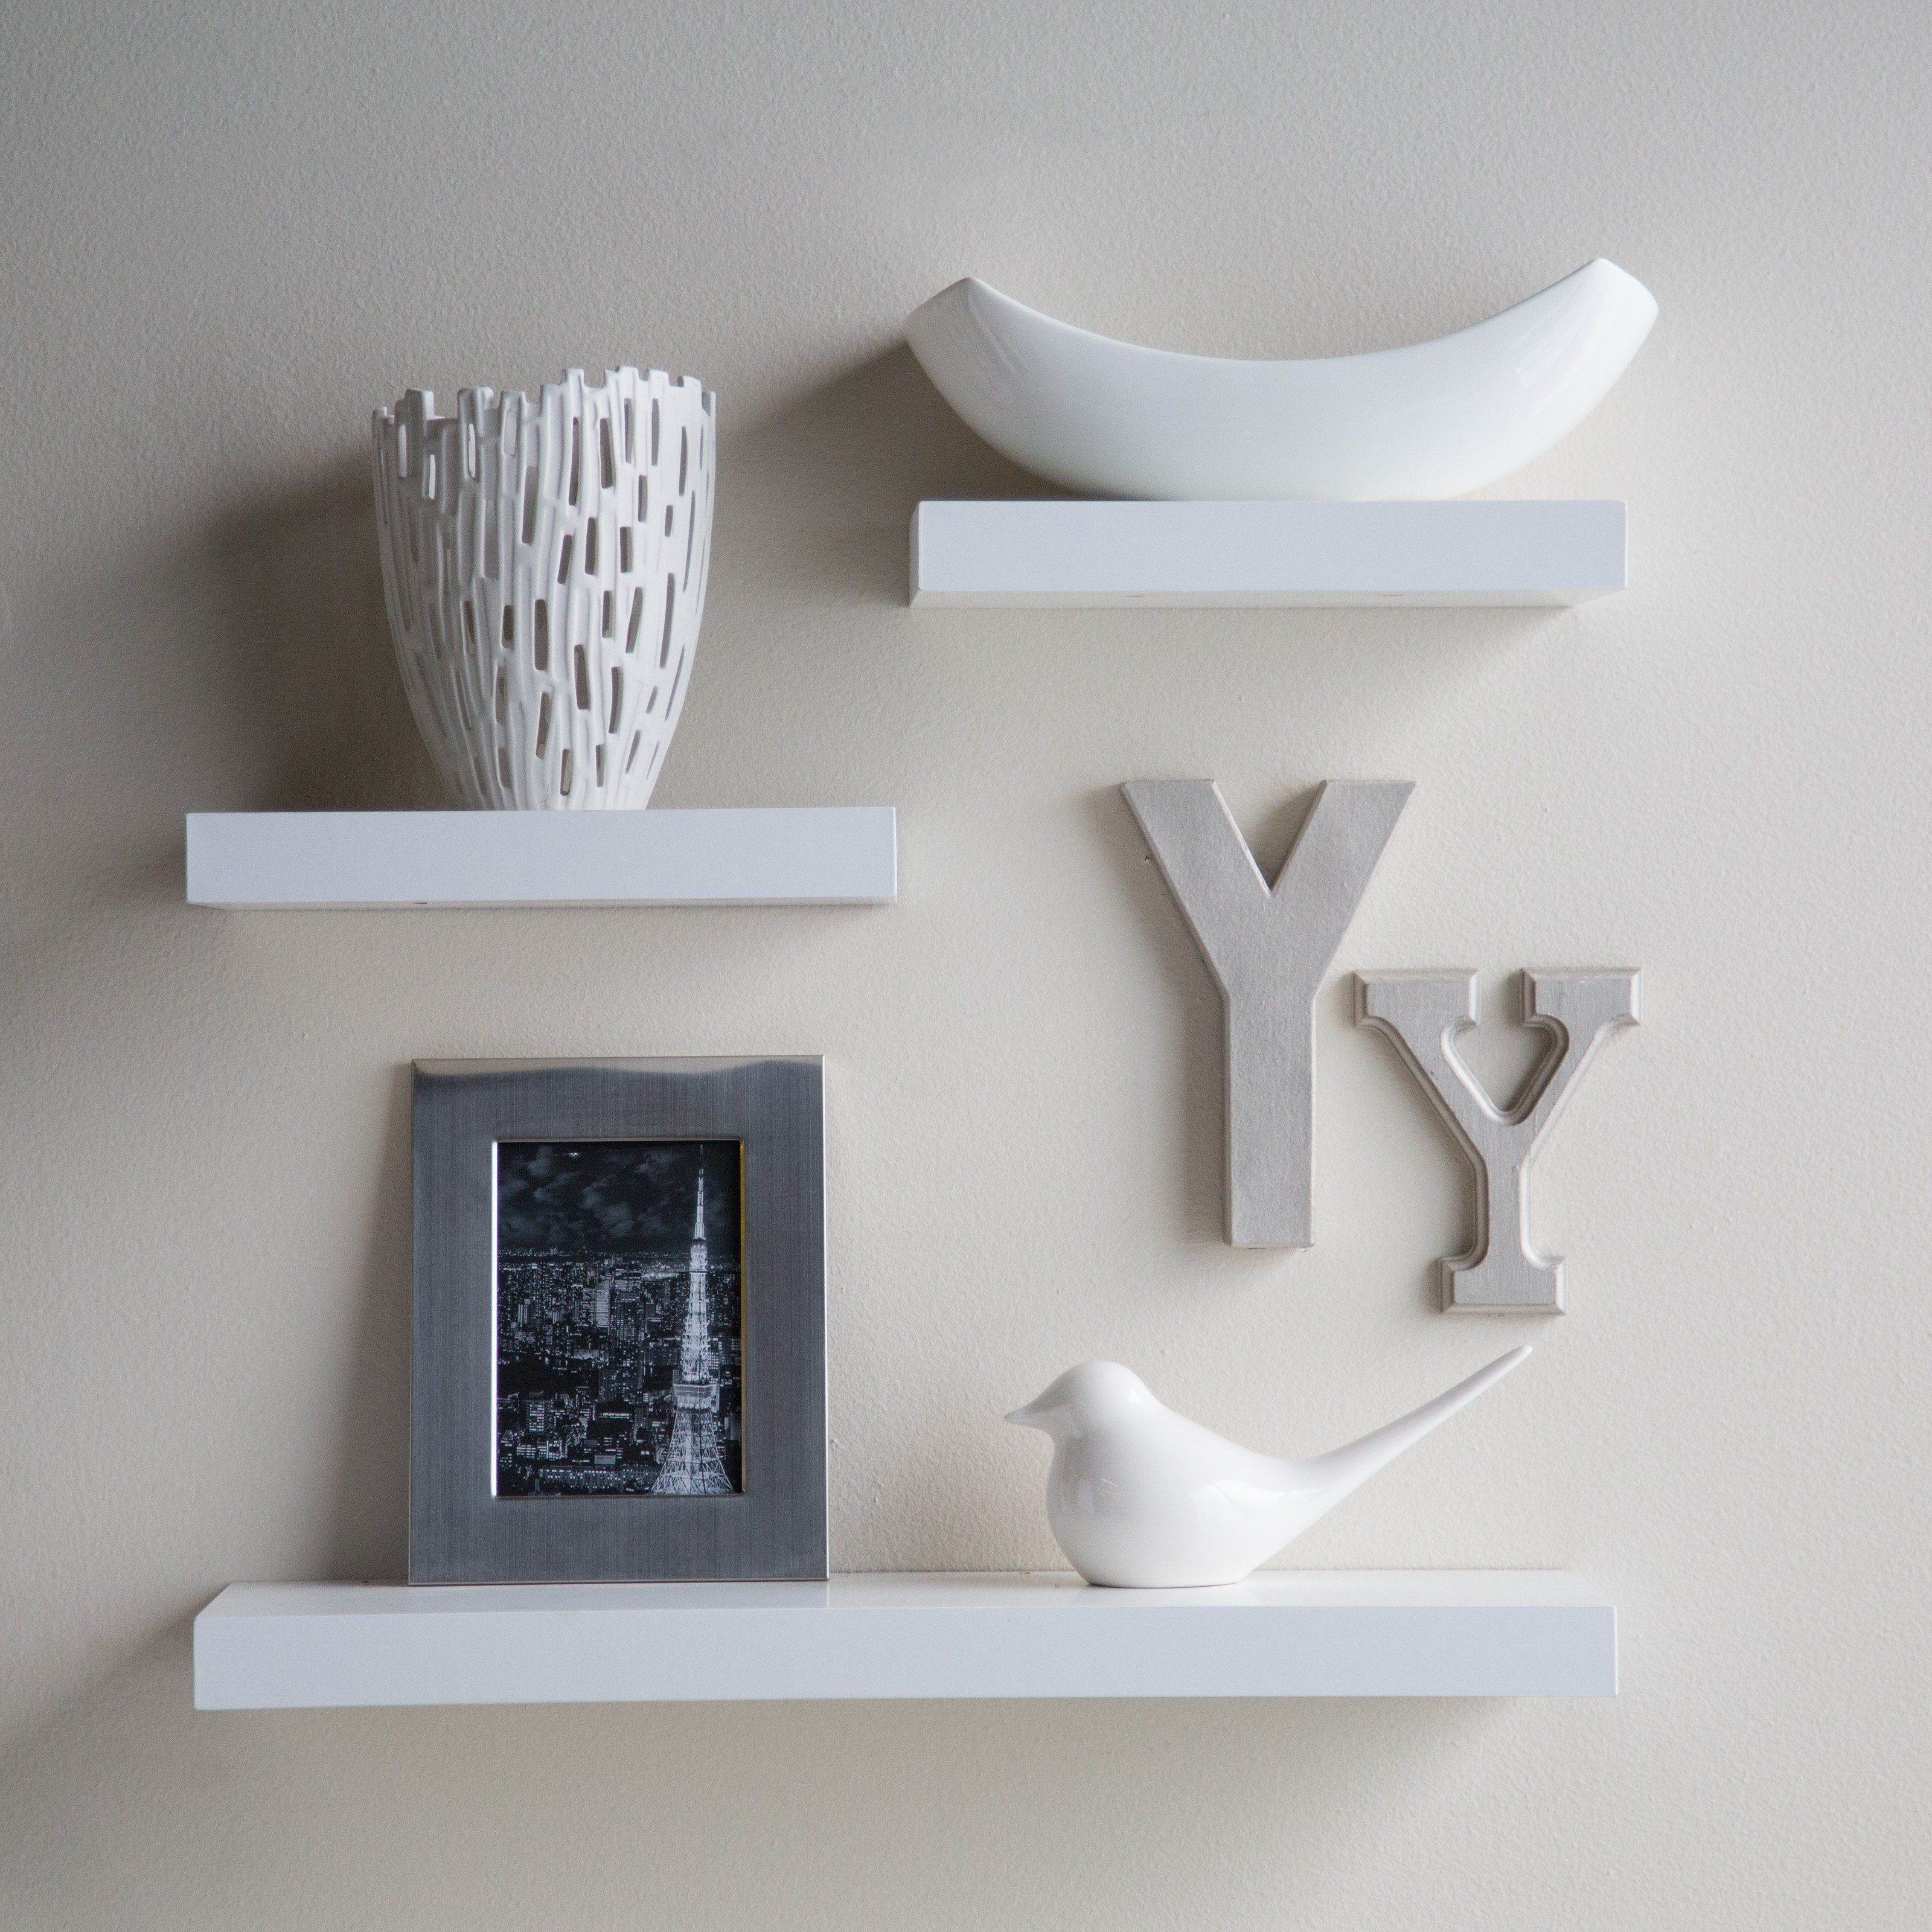 Clues Offers Decornation Floating Wall Shelf Set Of 3 Shelves 24 Inches 12 White At Best Prices Emi Options Are Also Available For